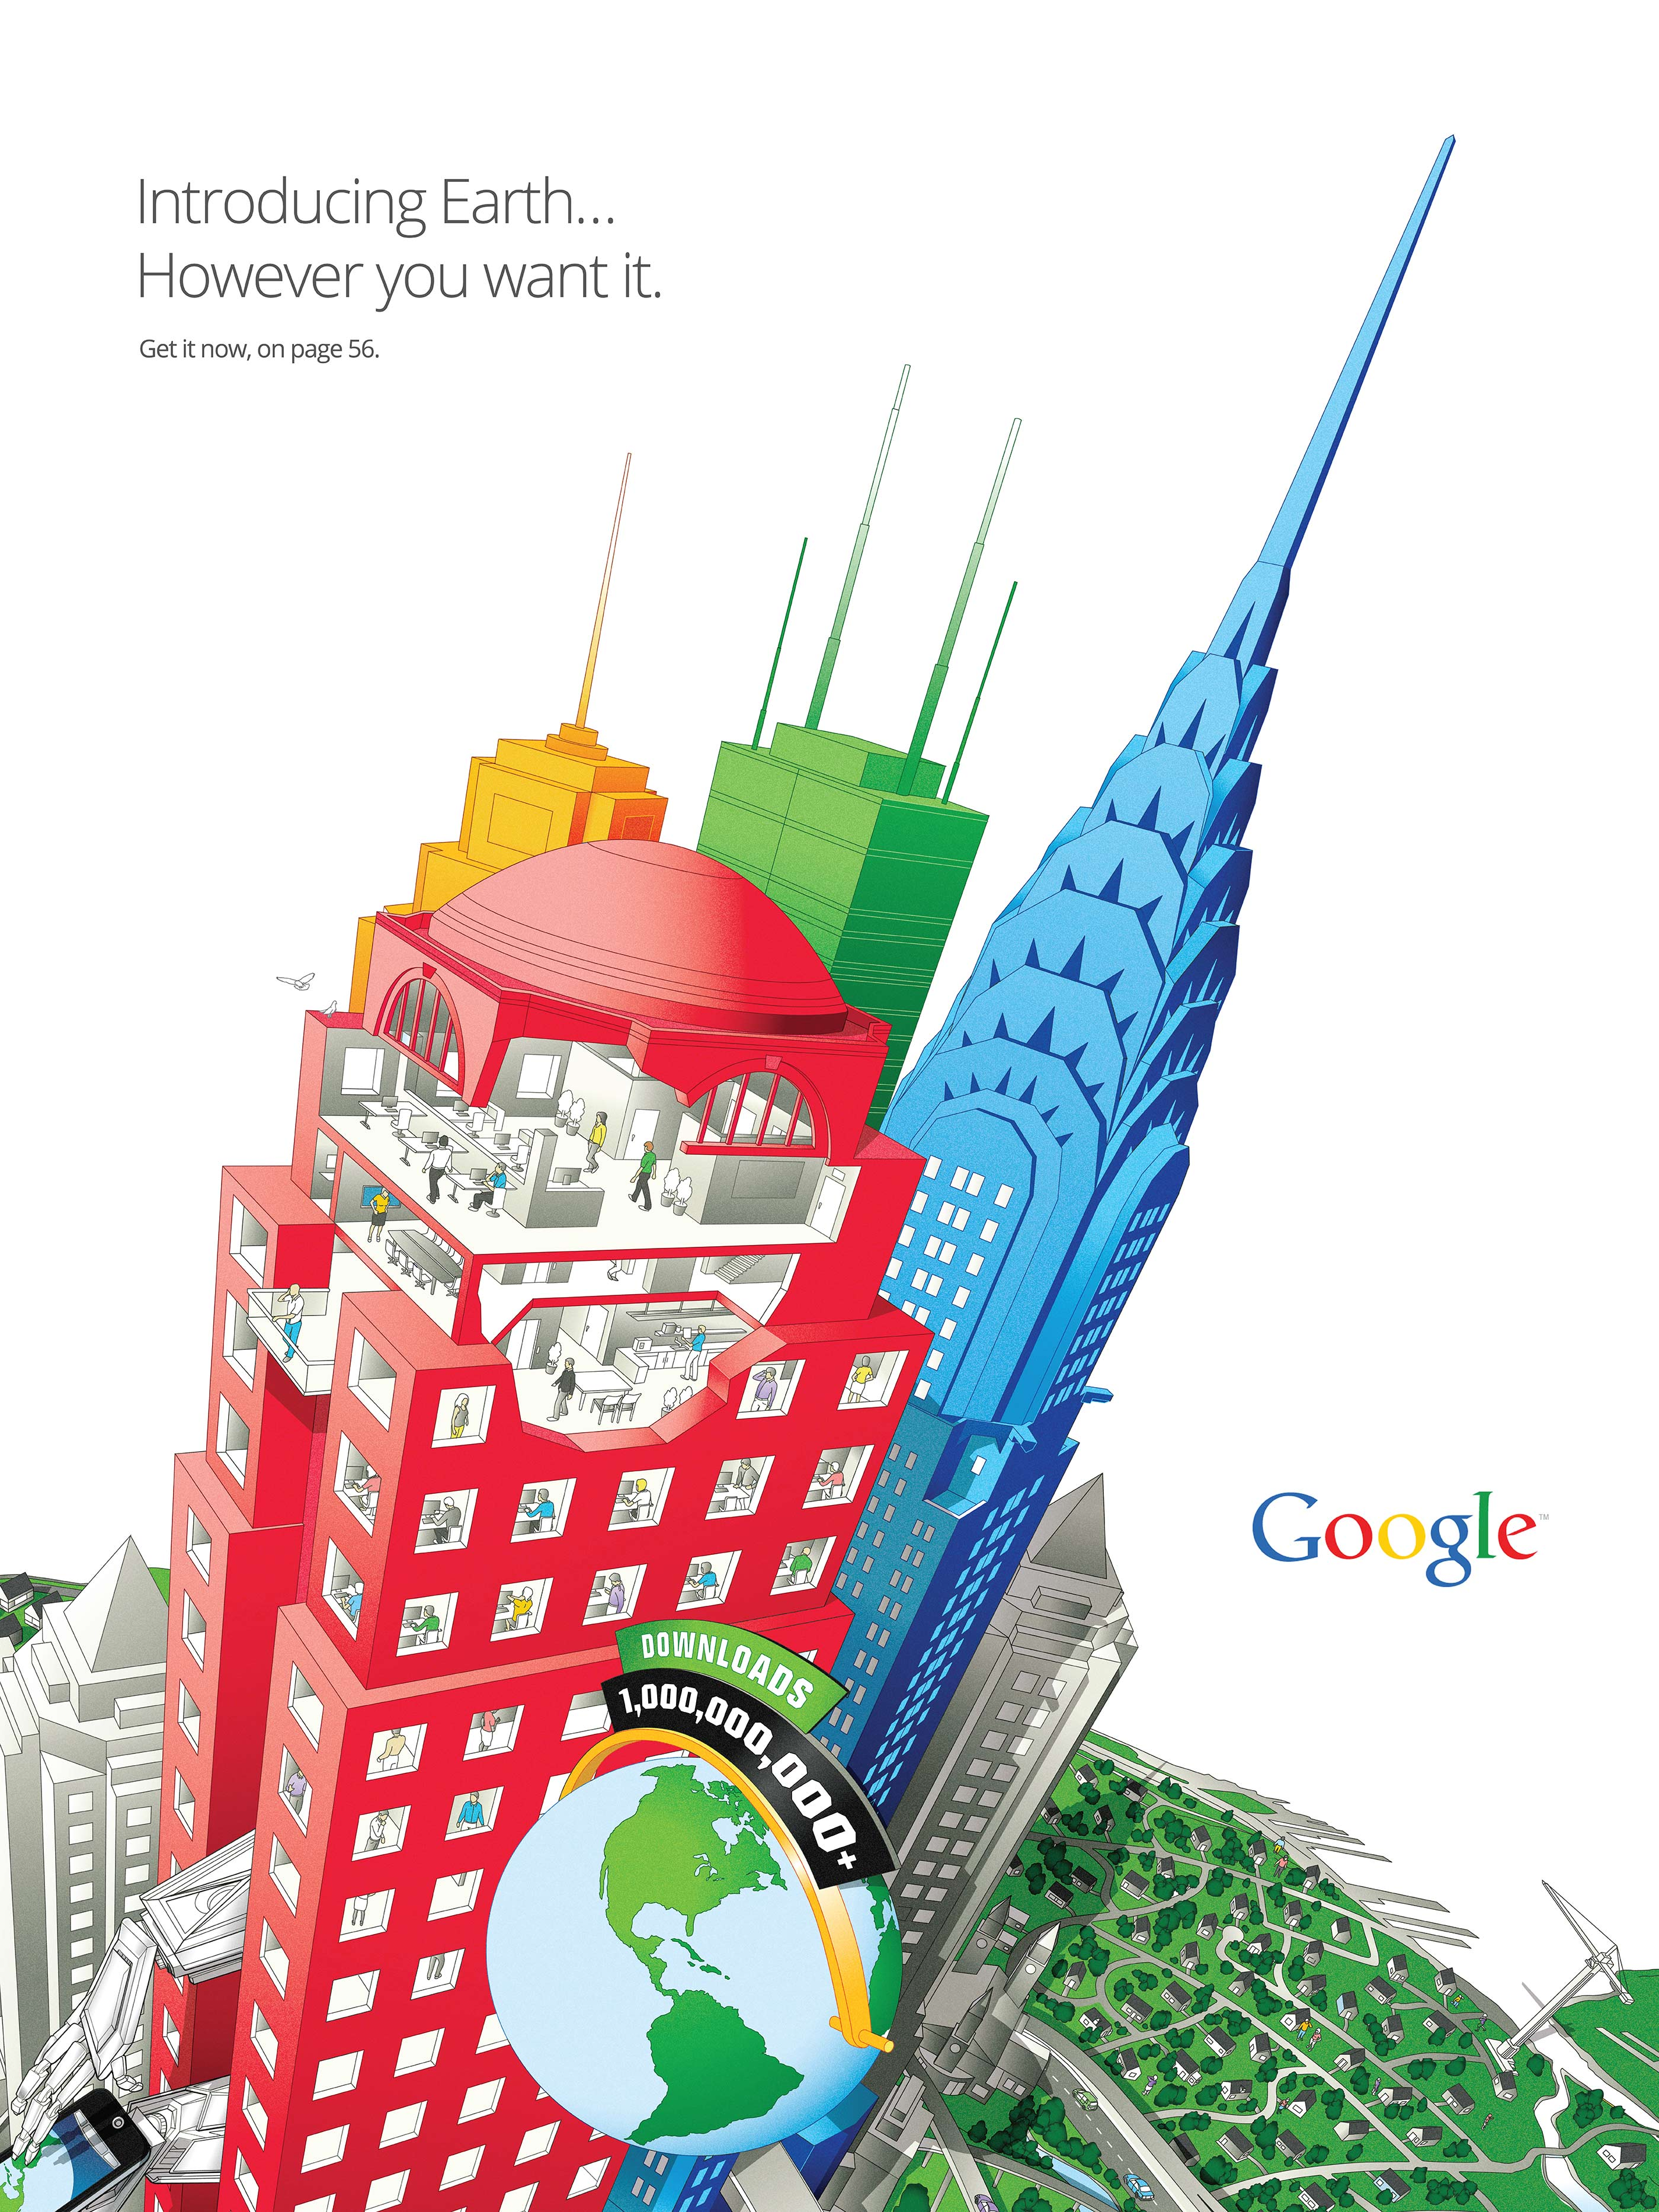 Google Earth, interior ad, introducing the infographic